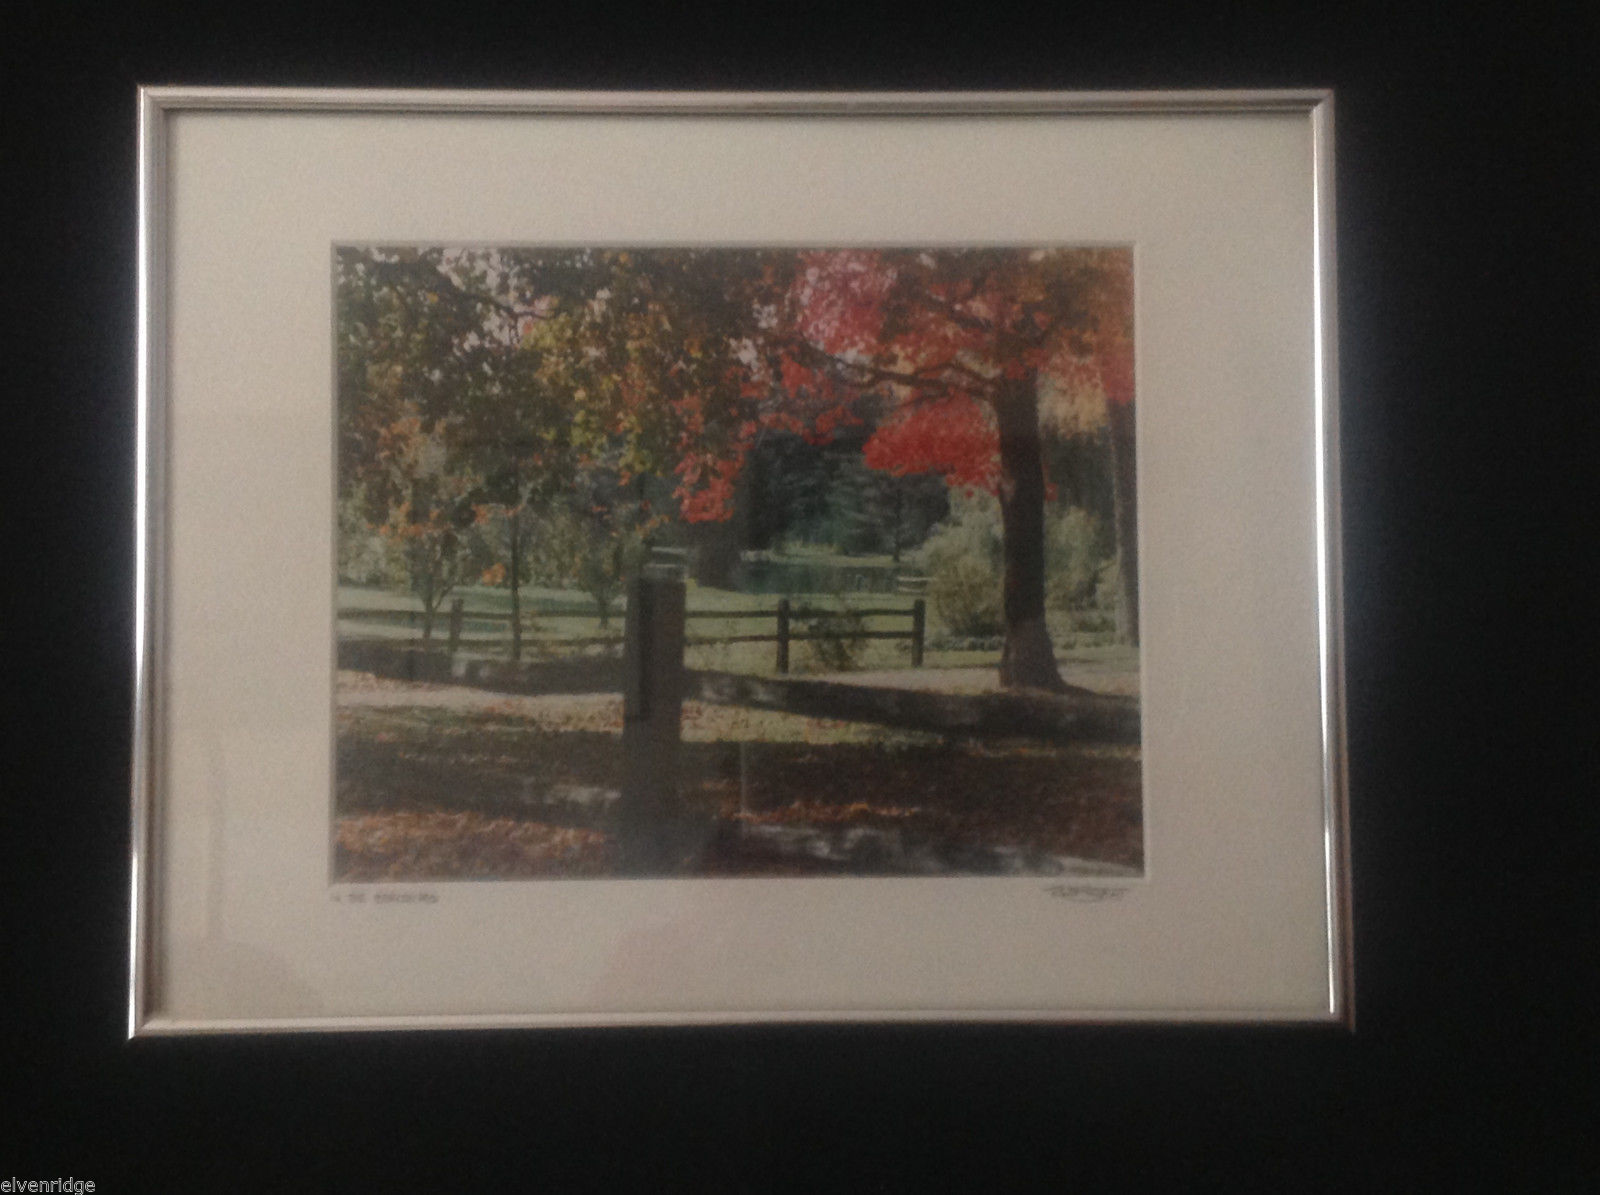 Framed Color Photograph In the Berkshires by Roso 2007